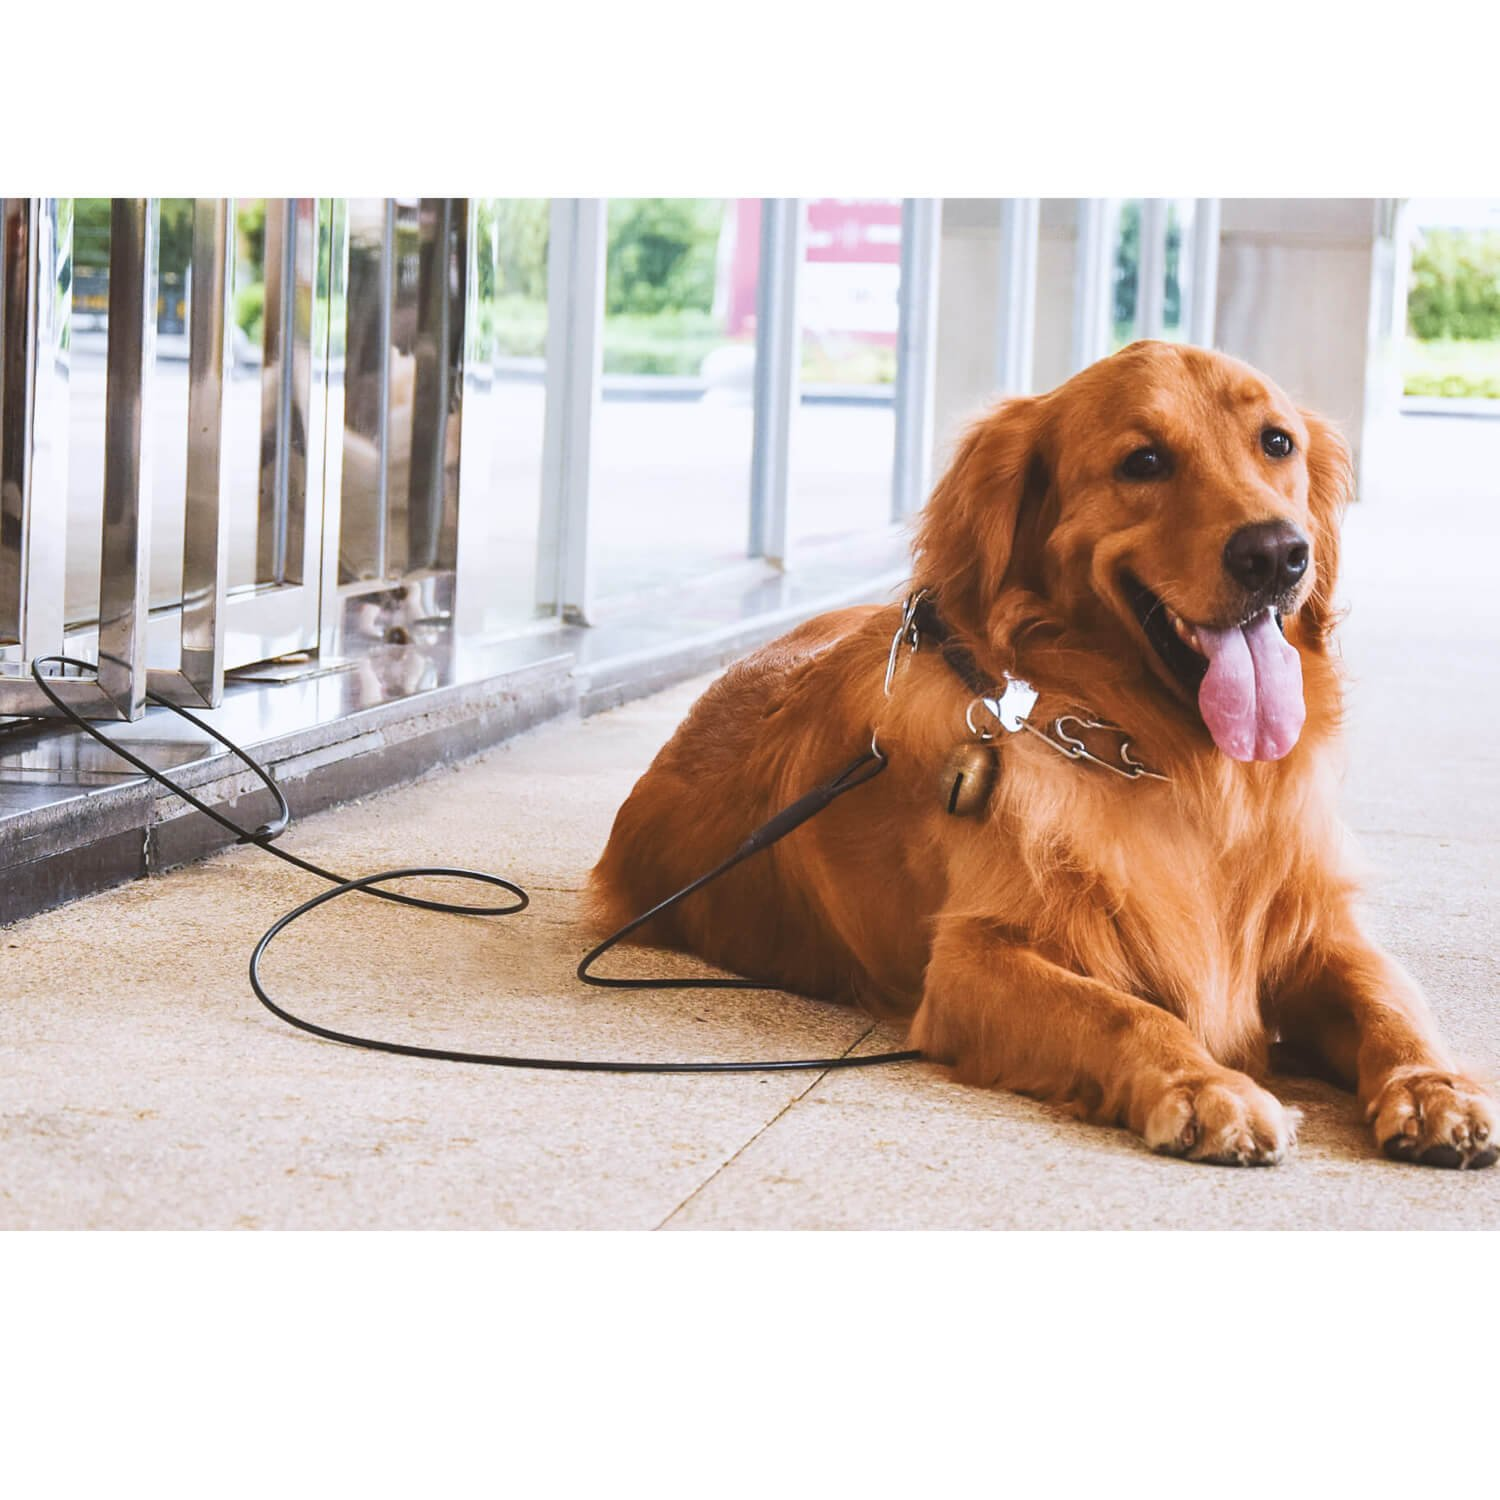 WATFOON Heavy Duty Dog Tie Out Cable For Super Beast Dog Up To 250lbs, SUS304 Stainless Steel Swivel Clip Tangle Free,Perfect Choice For Outdoor,Yard,Training & Camping (10 FT, Black) by WATFOON (Image #1)